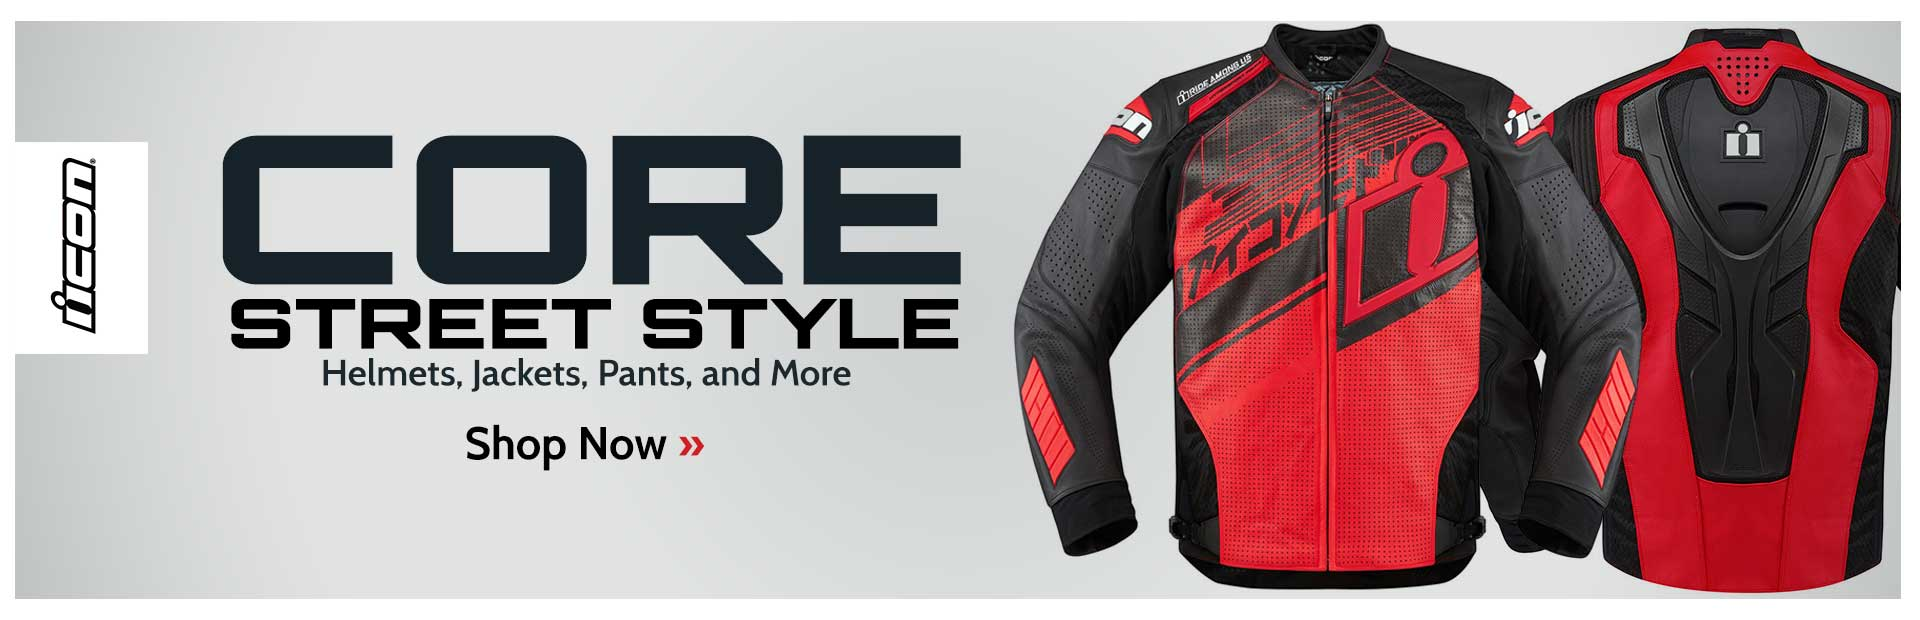 Click here to view helmets, jackets, pants, and more from Icon.